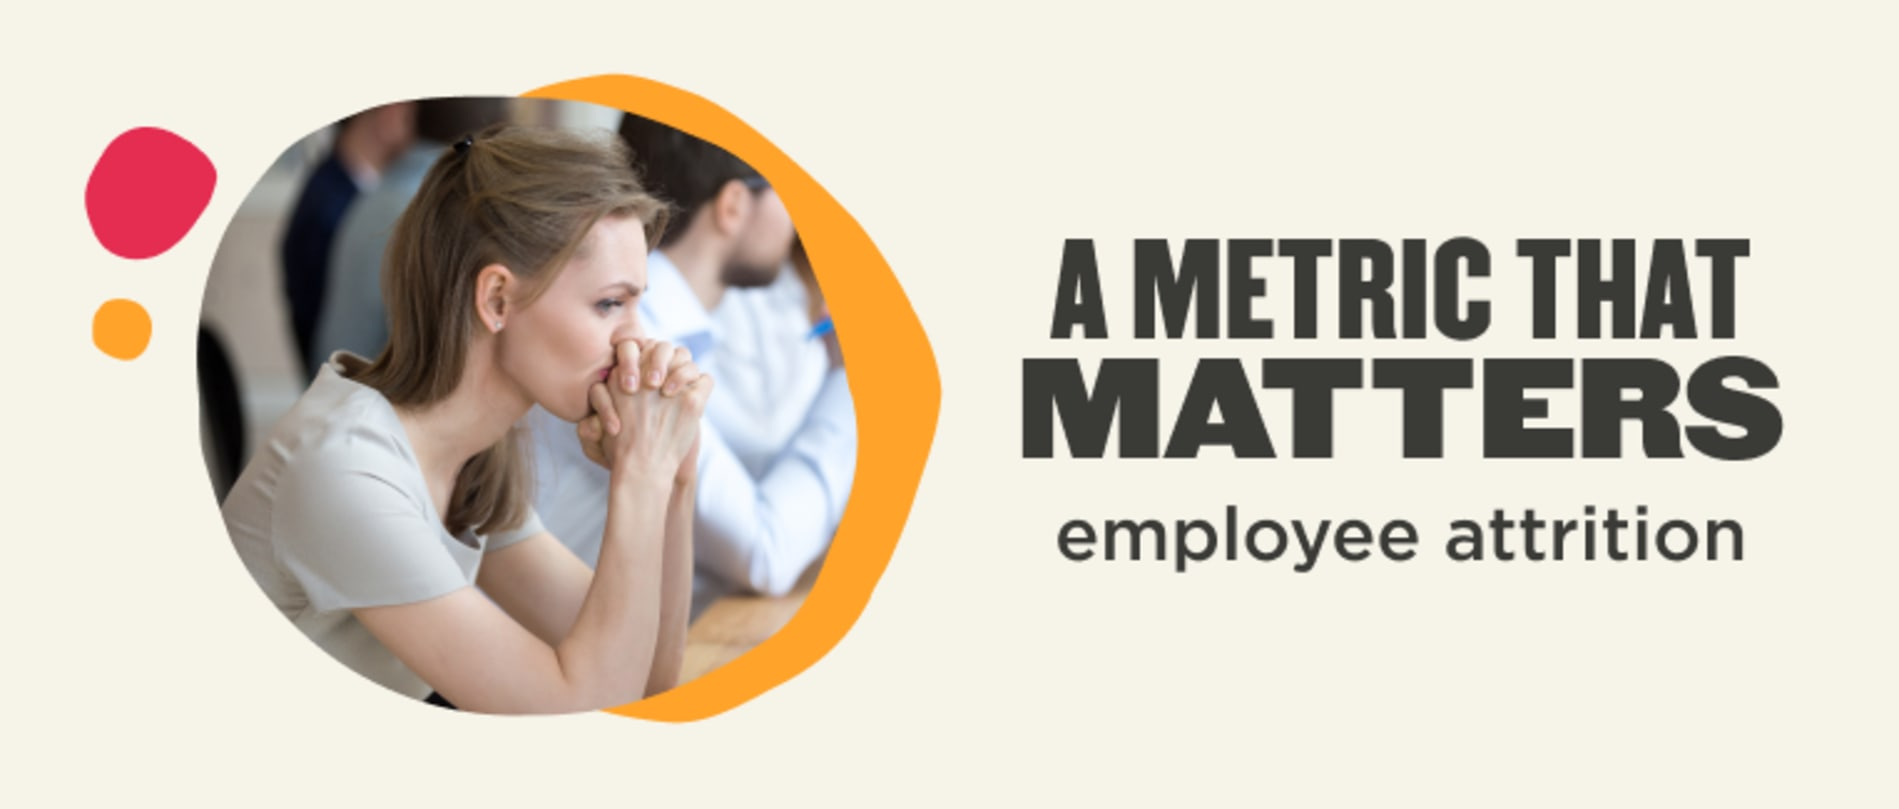 A metric that matters (employee attrition)